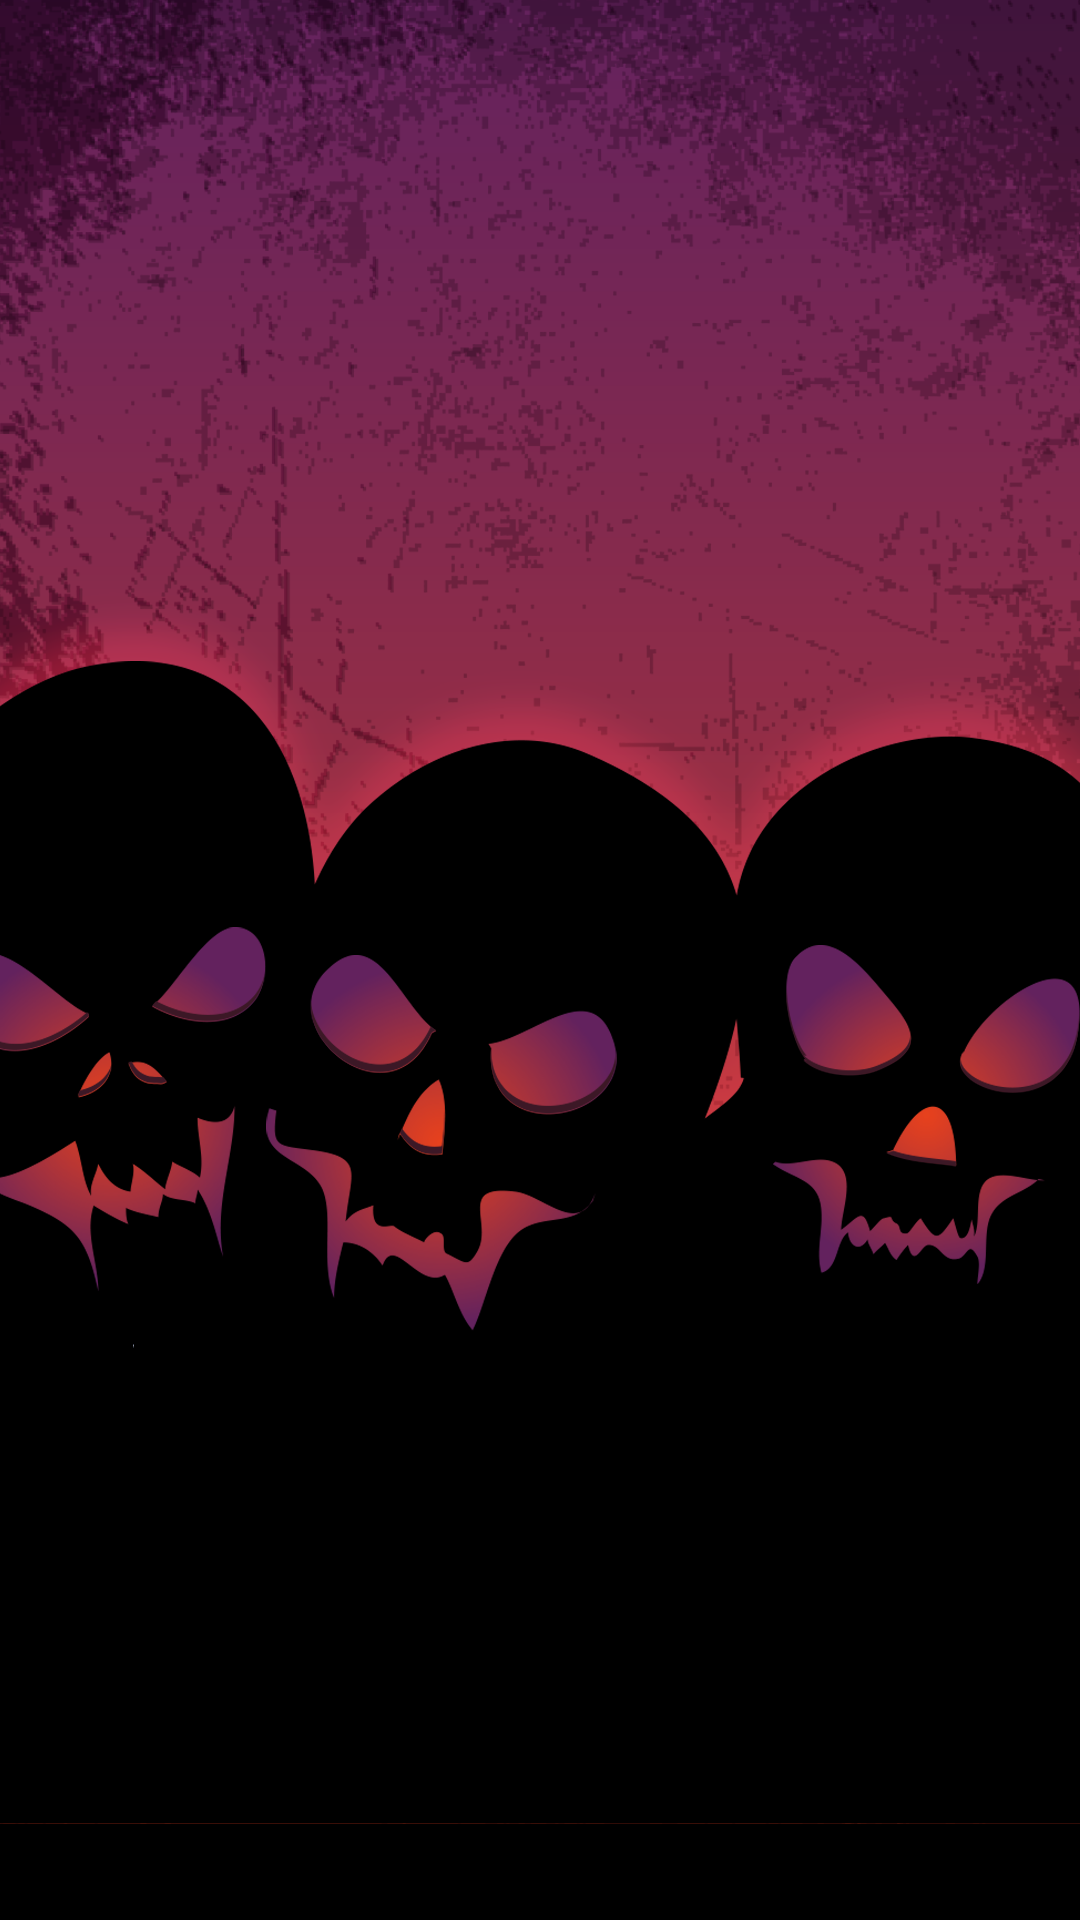 Pin by Amber O on Logos Skull wallpaper, Best iphone